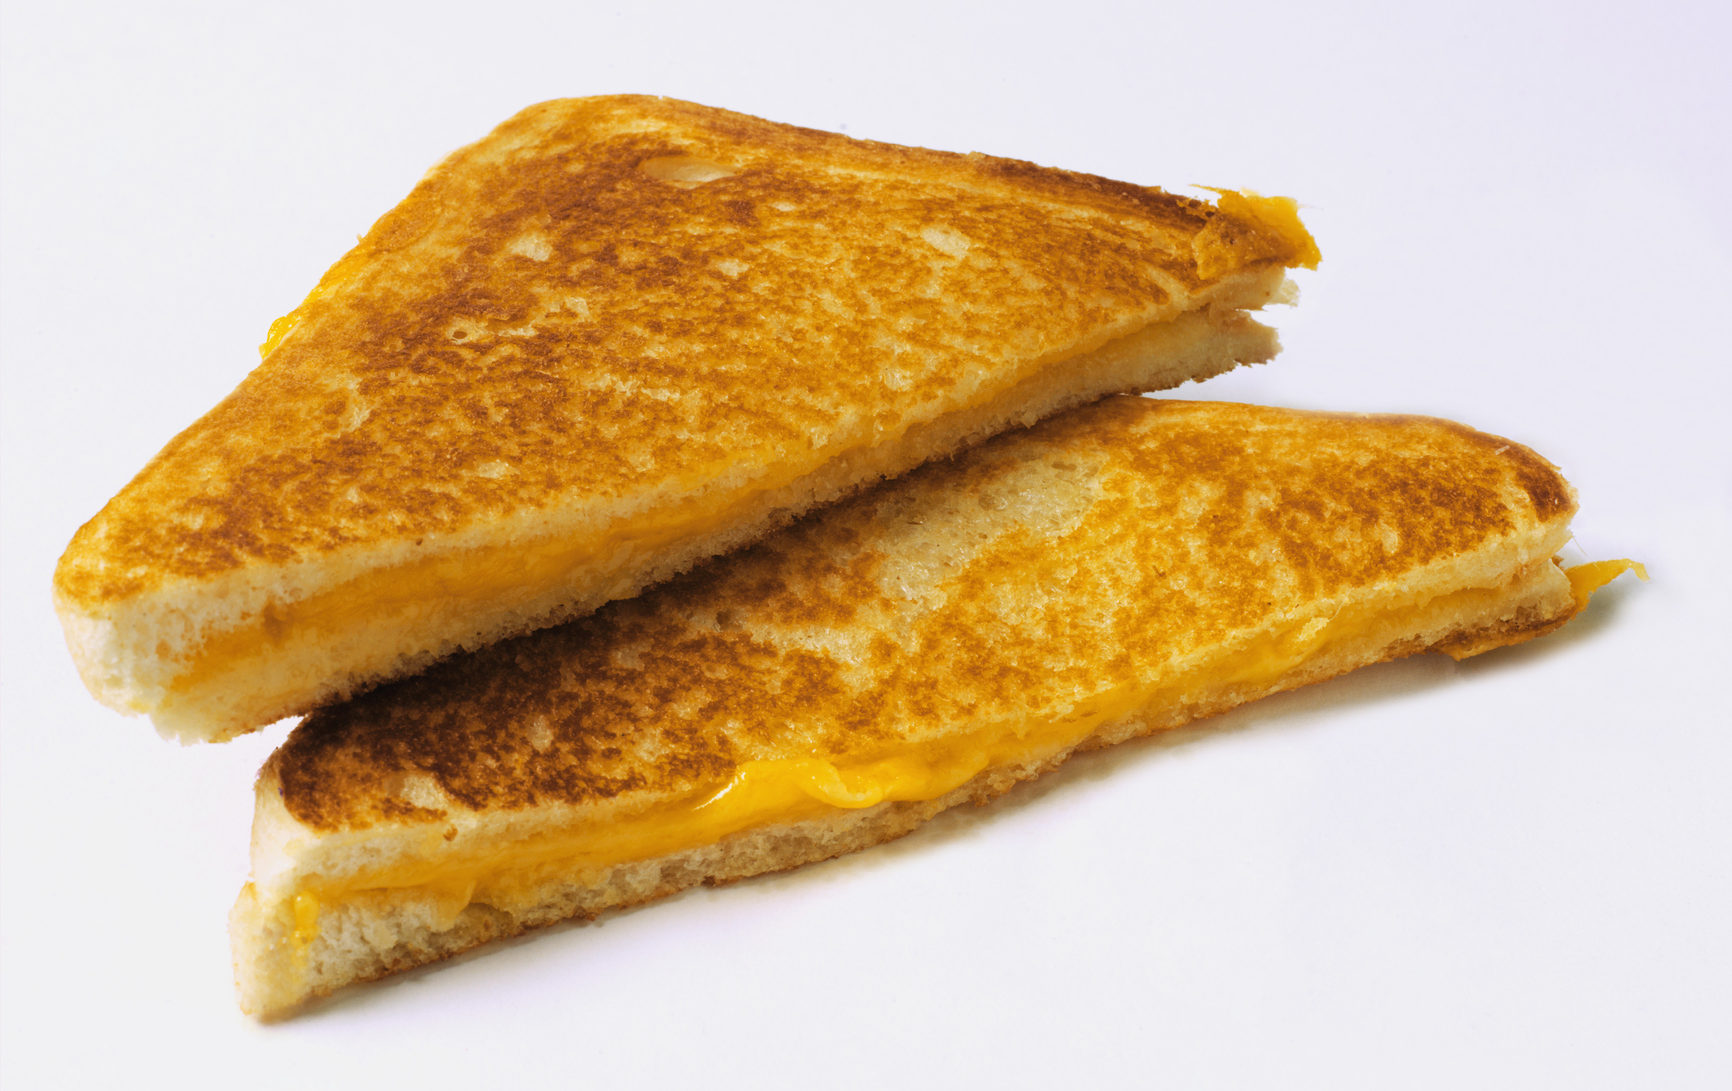 National grilled cheese day braum' clip art.